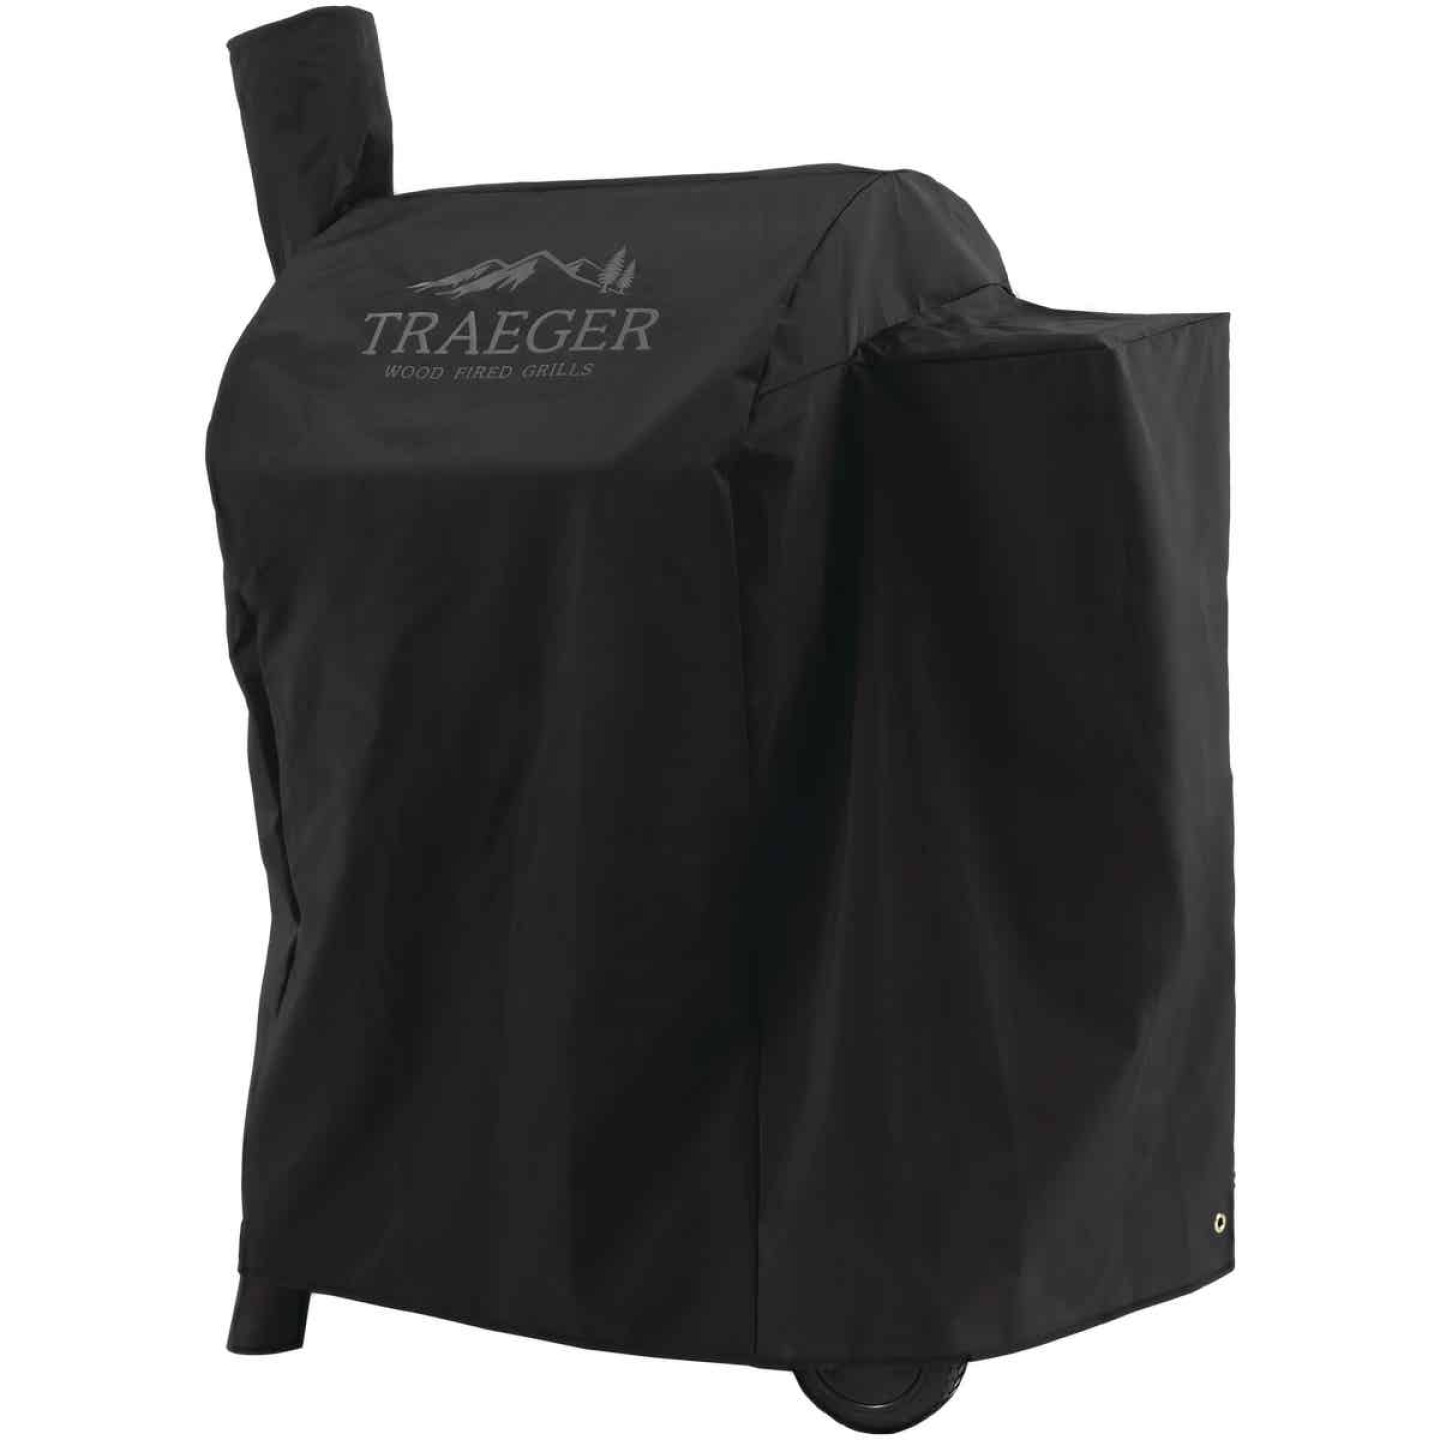 Traeger Pro 22/Pro 575 35 In. Black Polyester Grill Cover Image 1